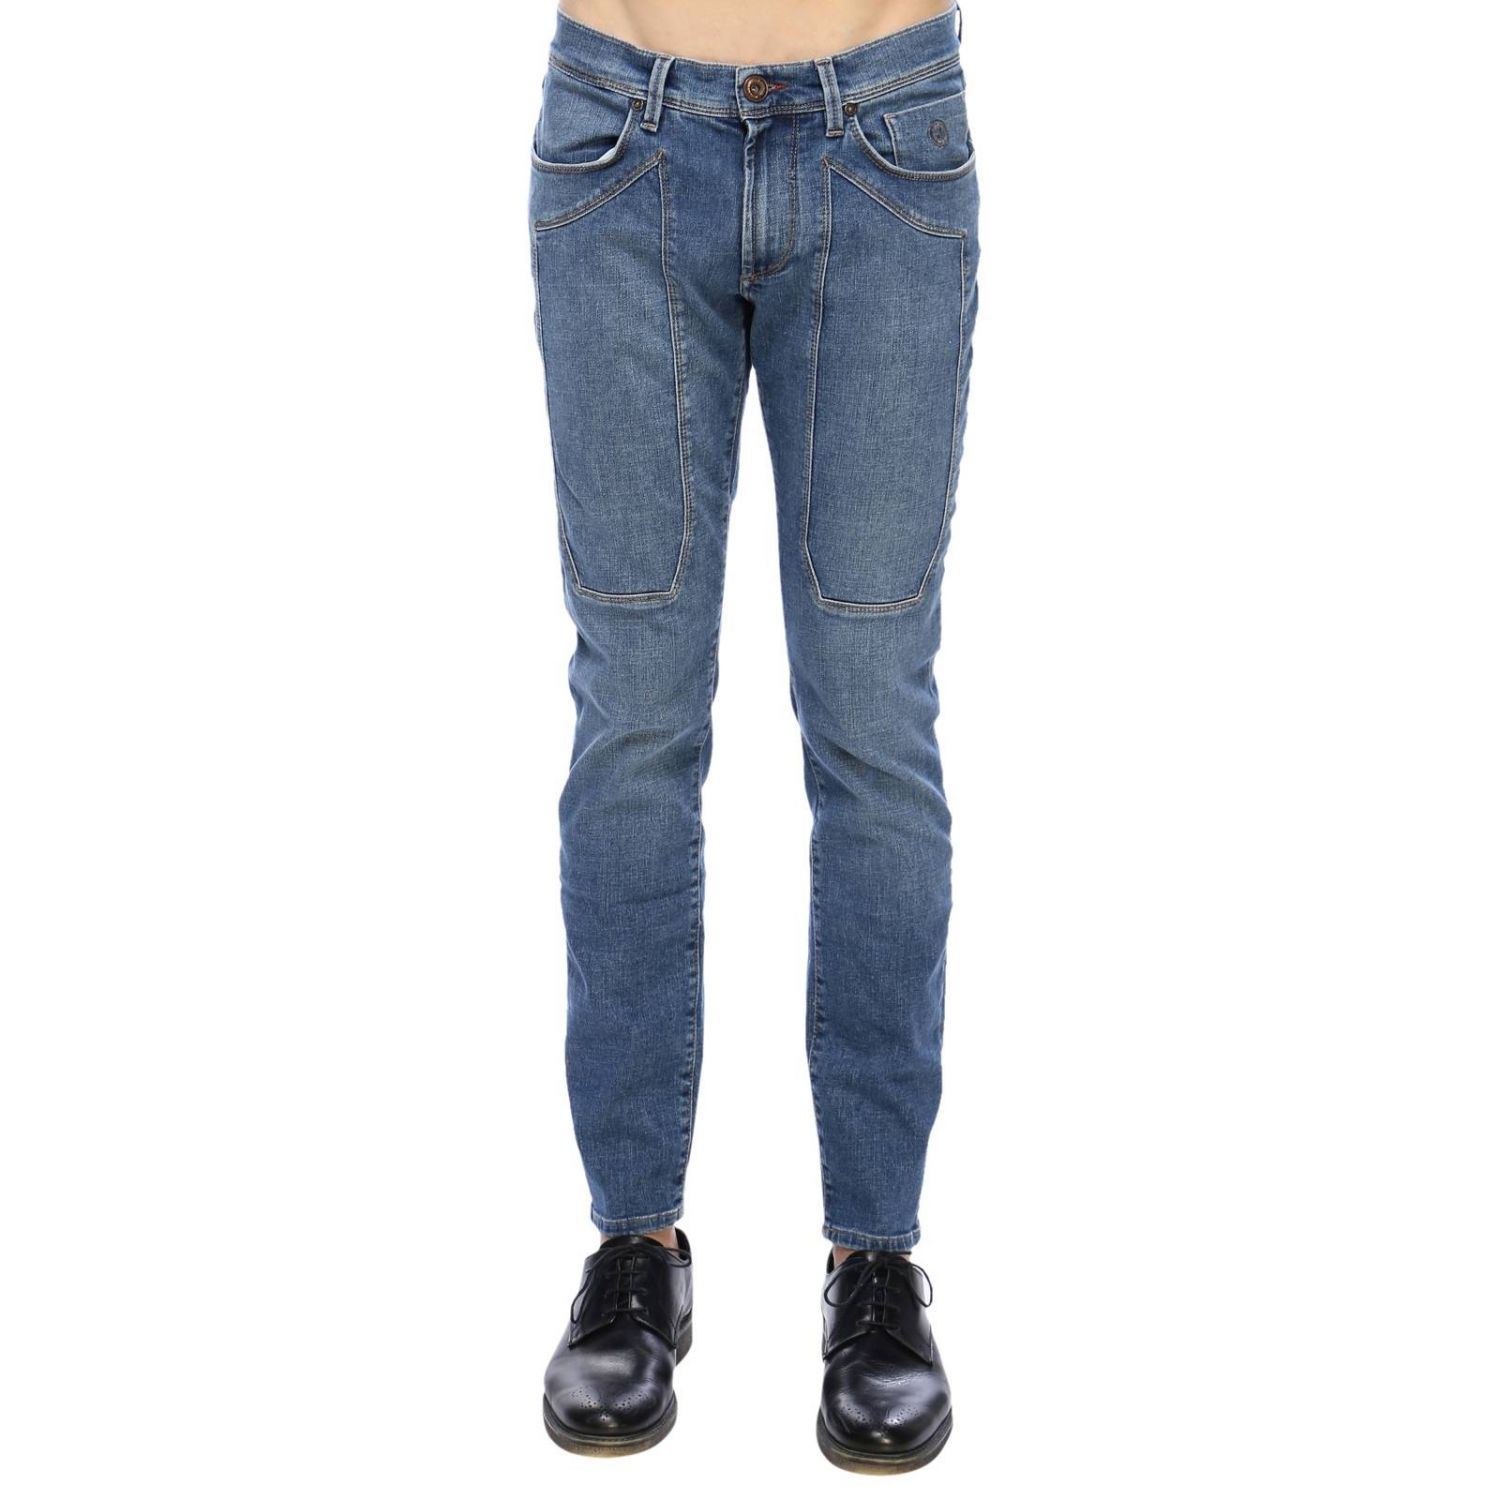 Jeans Jeans Men Jeckerson 8498173